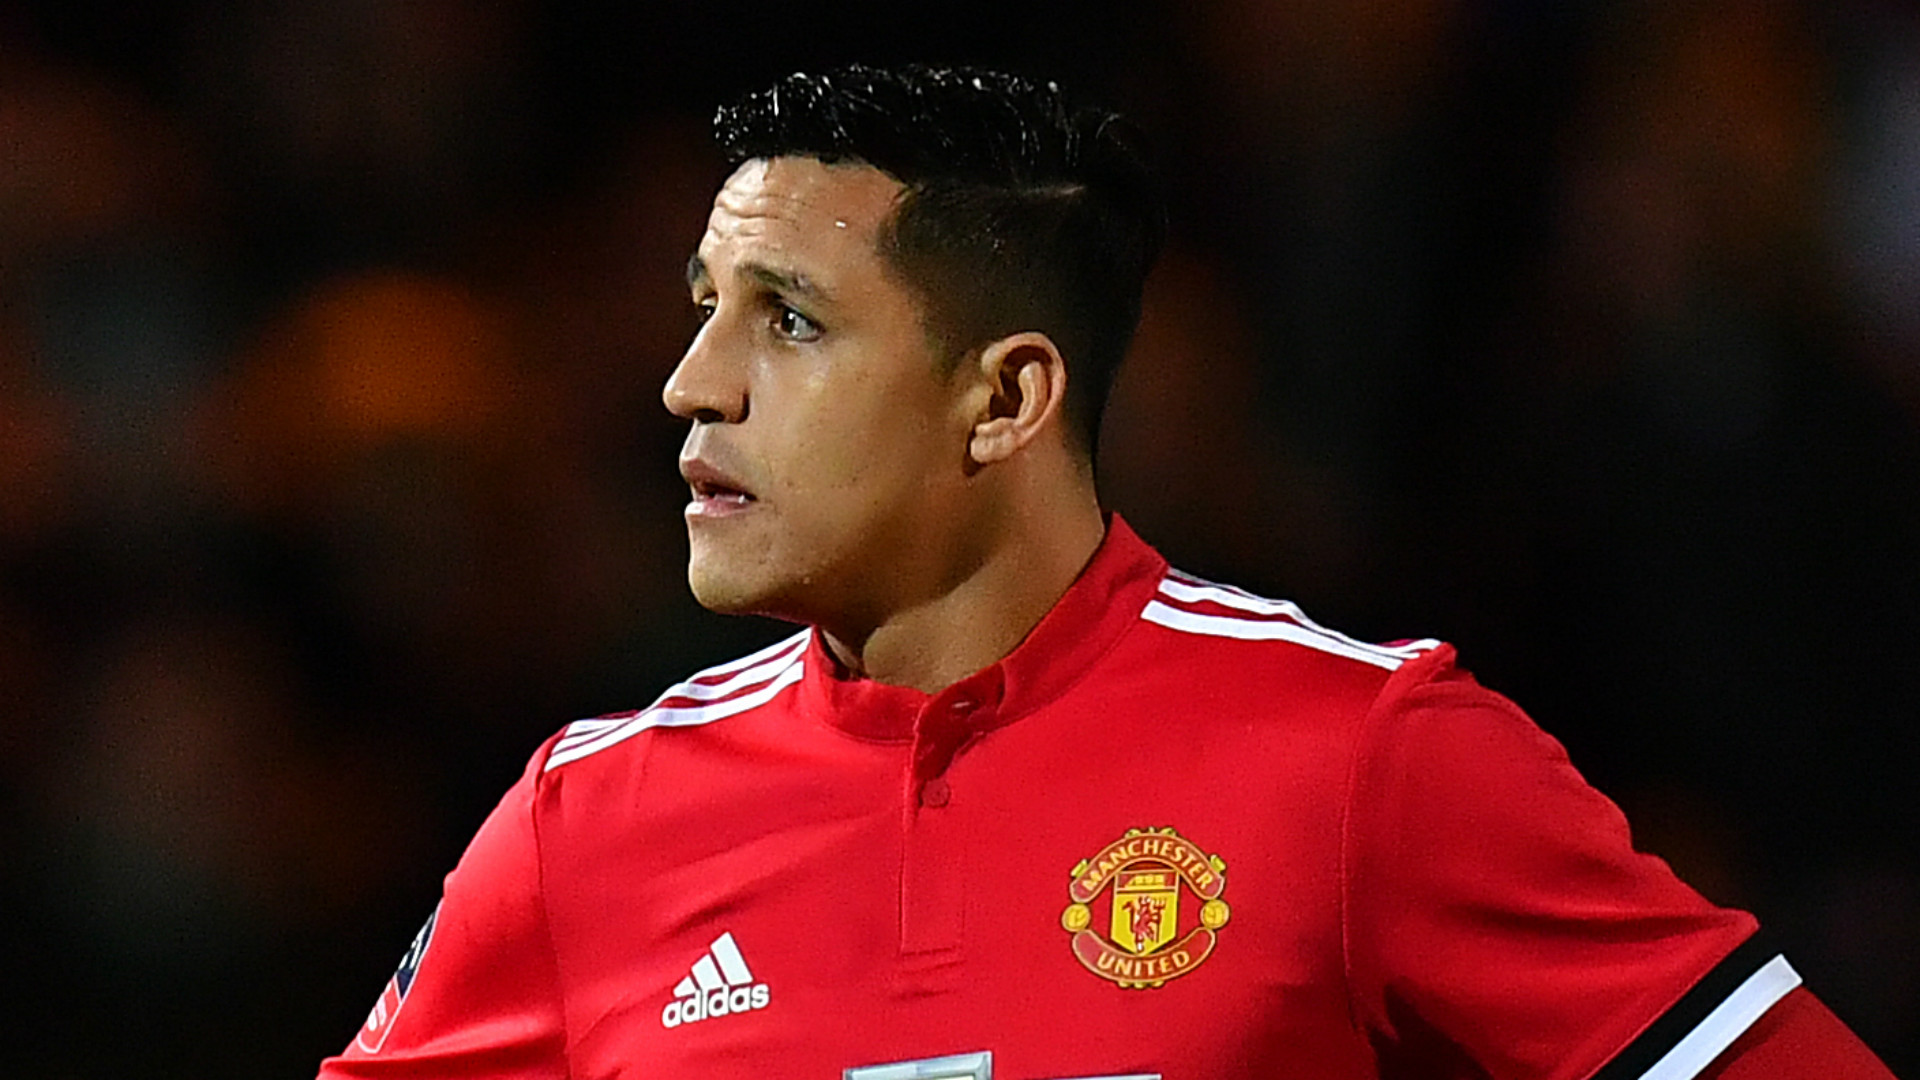 EPL: Alexis Sanchez is exciting, dynamic, says Michael Carrick